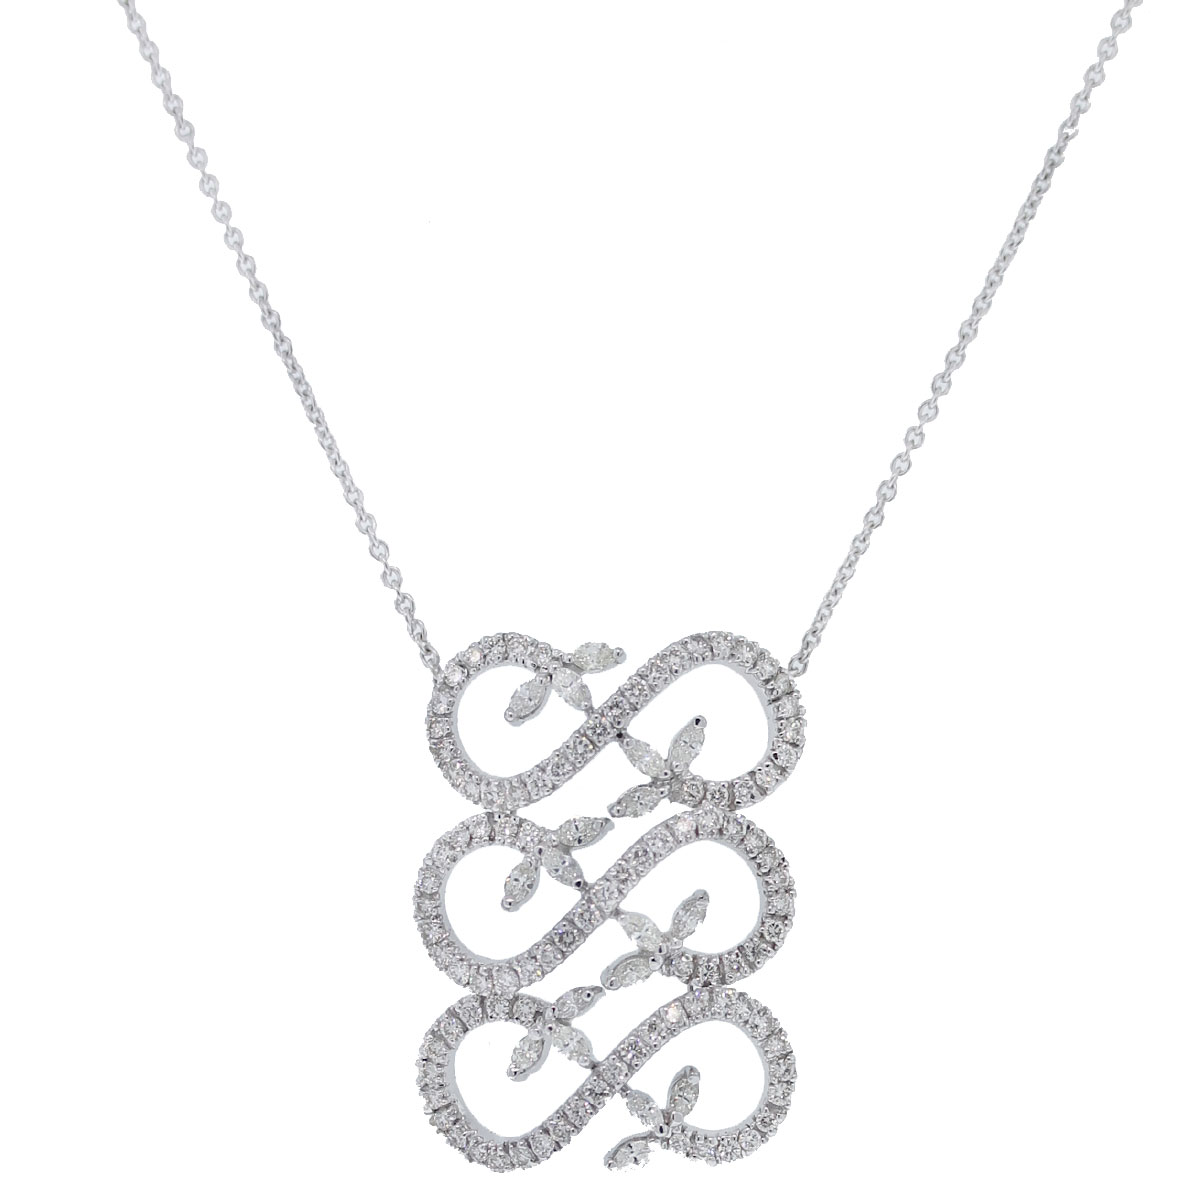 18kt White Gold Triple Infinity Round & Marquise Diamond Necklace Pendant